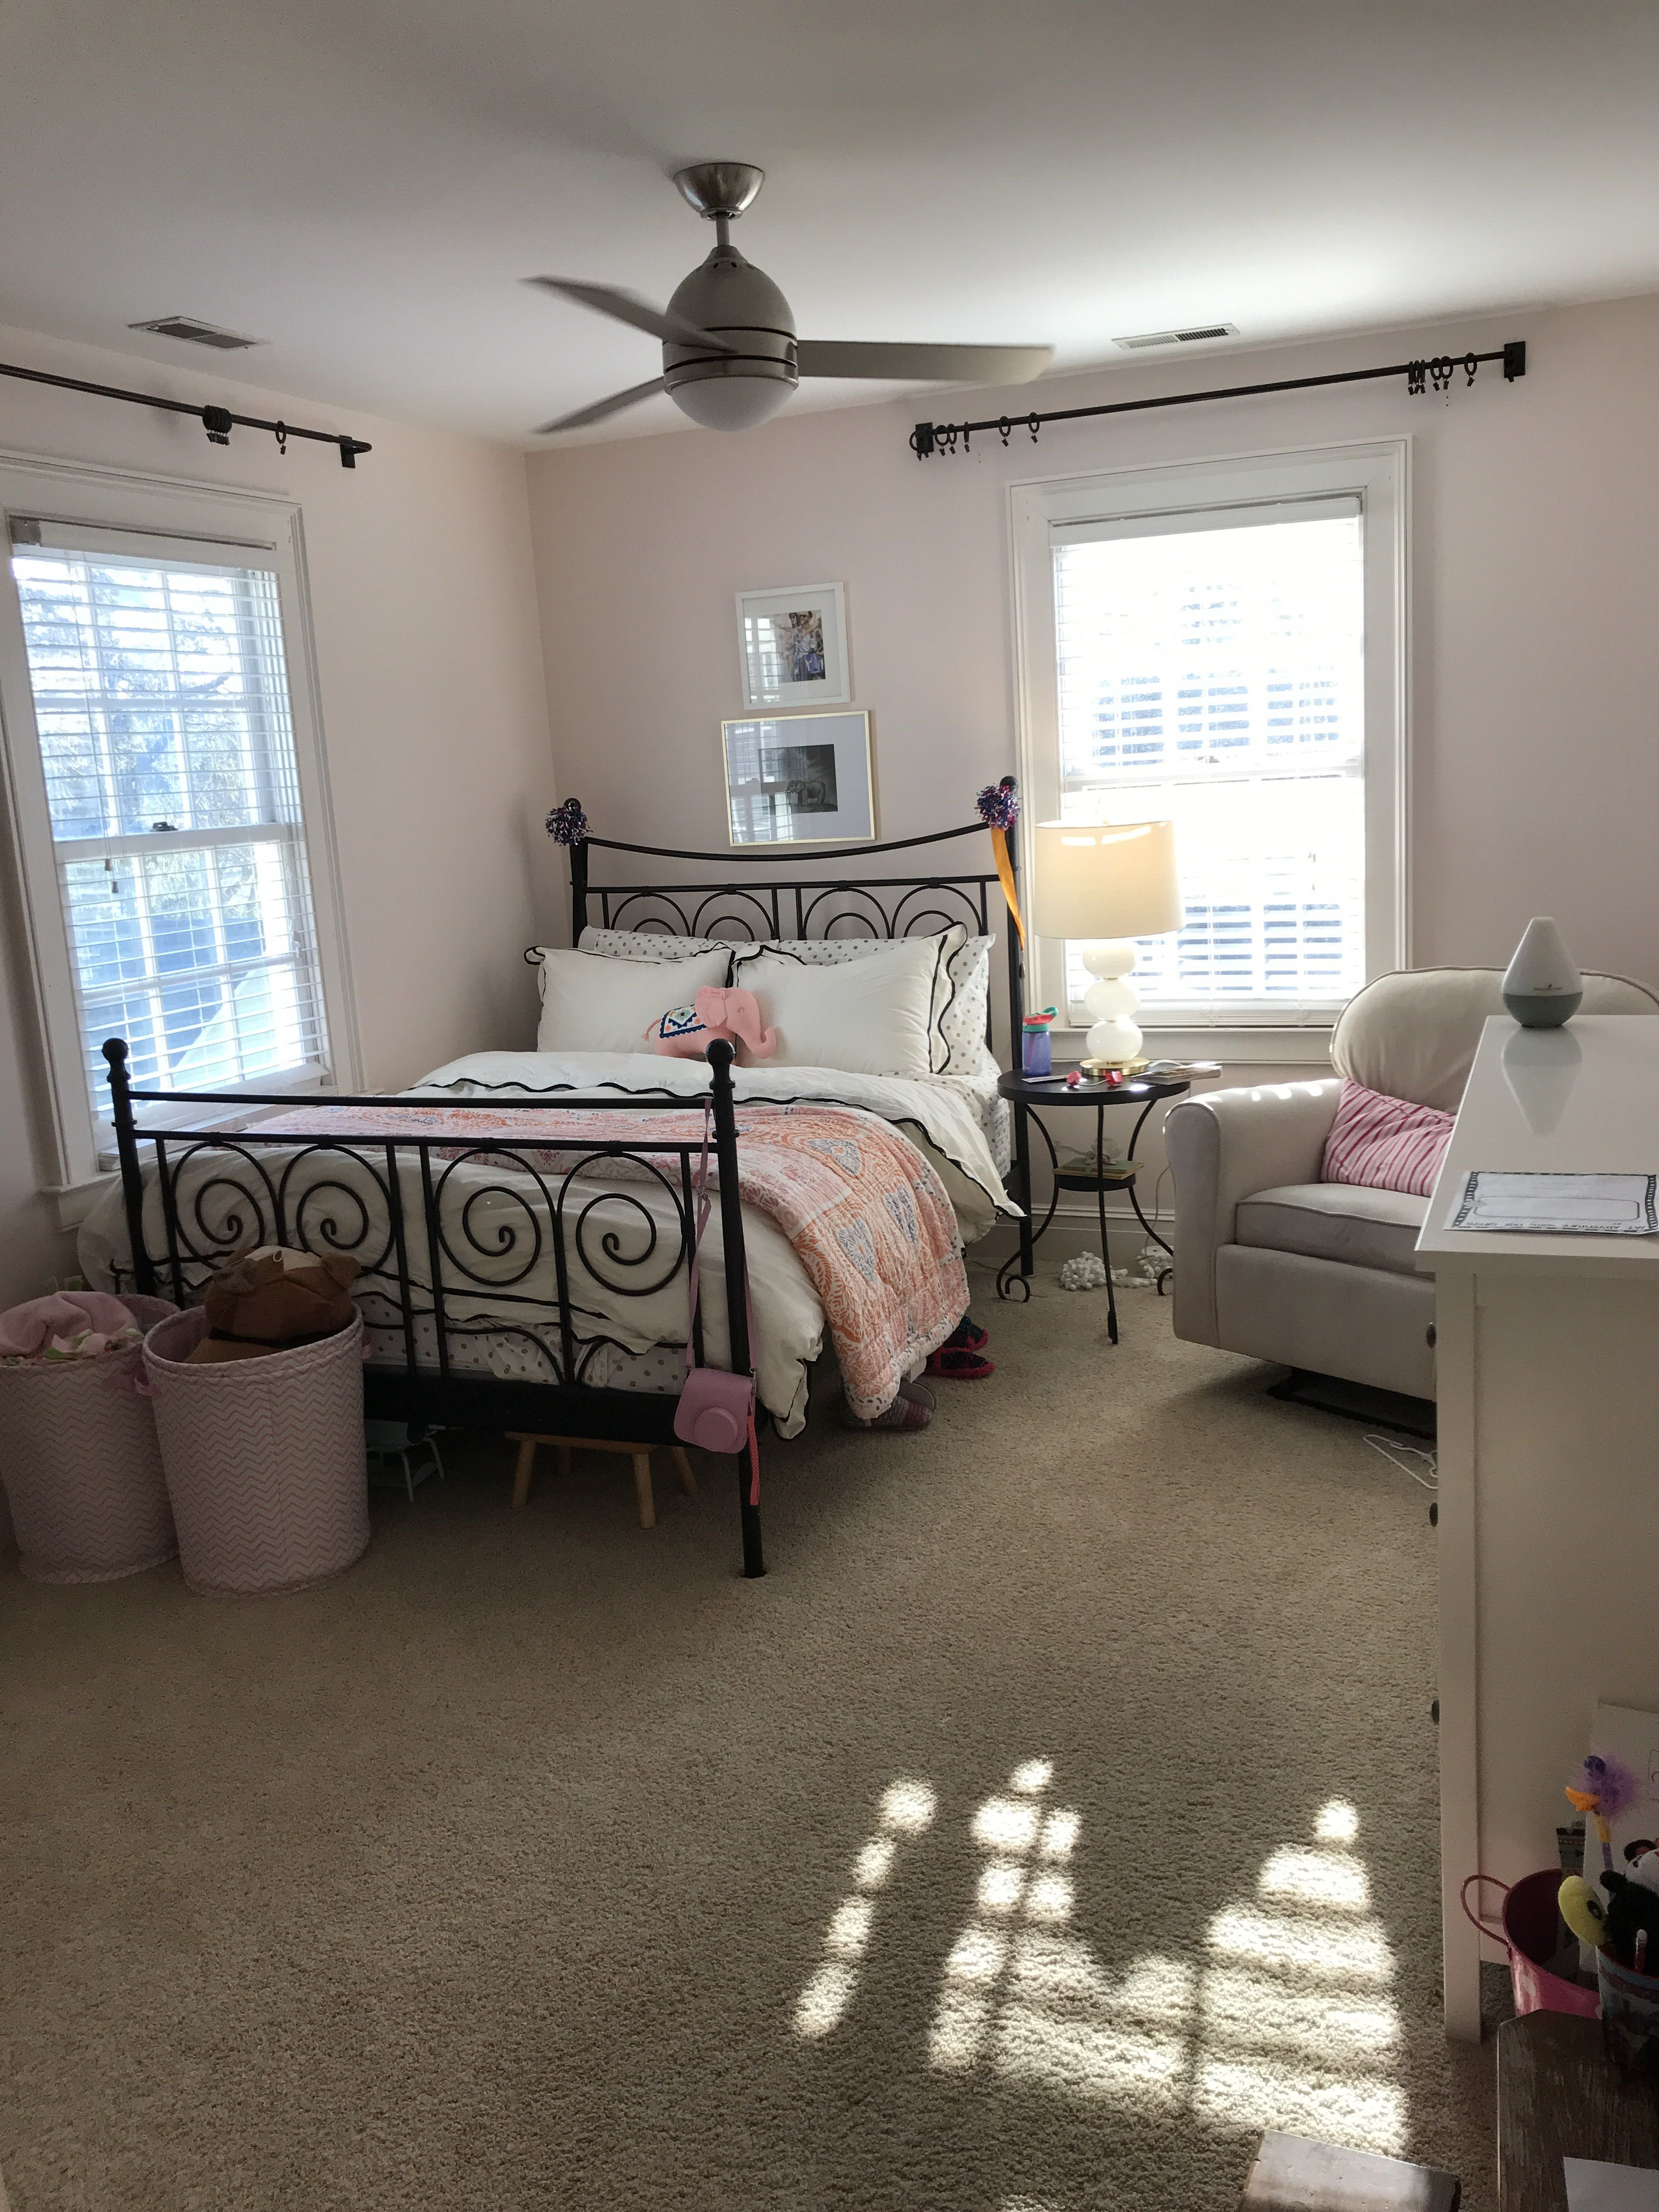 How to place a rug under a bed area rug placement with